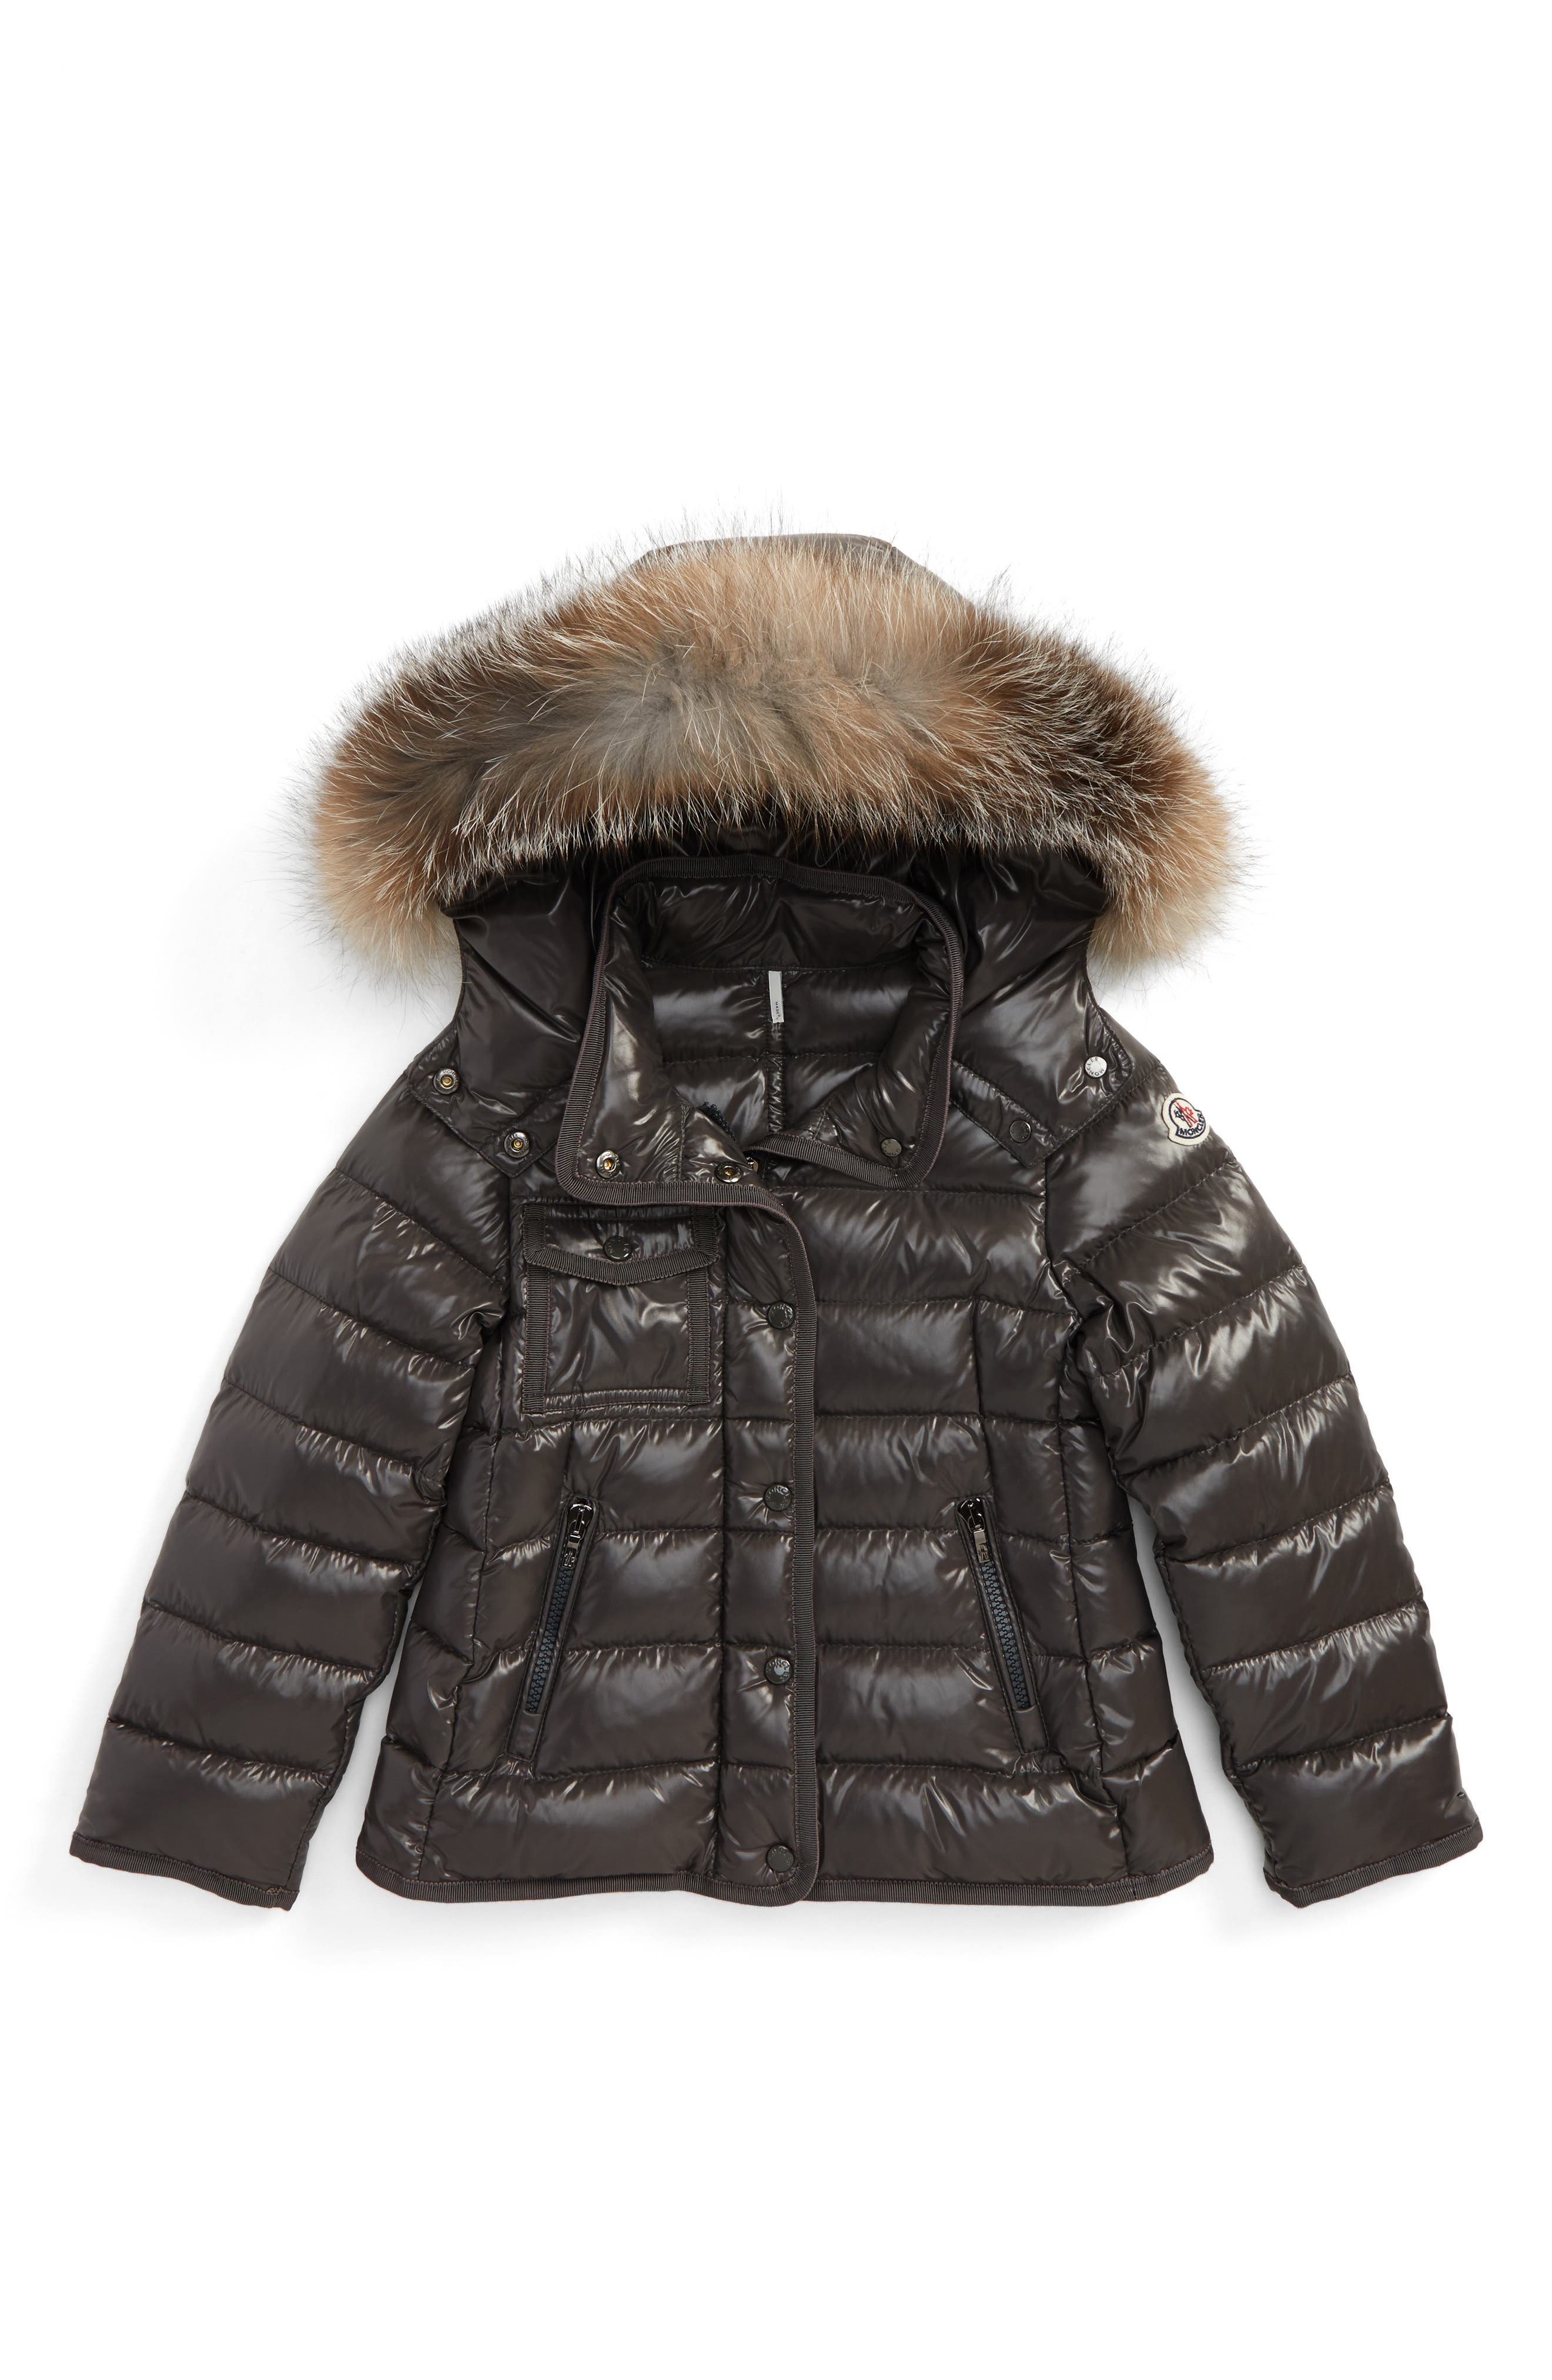 Main Image - Moncler Armoise Hooded Jacket with Genuine Fox Fur Trim (Little Girls & Big Girls)